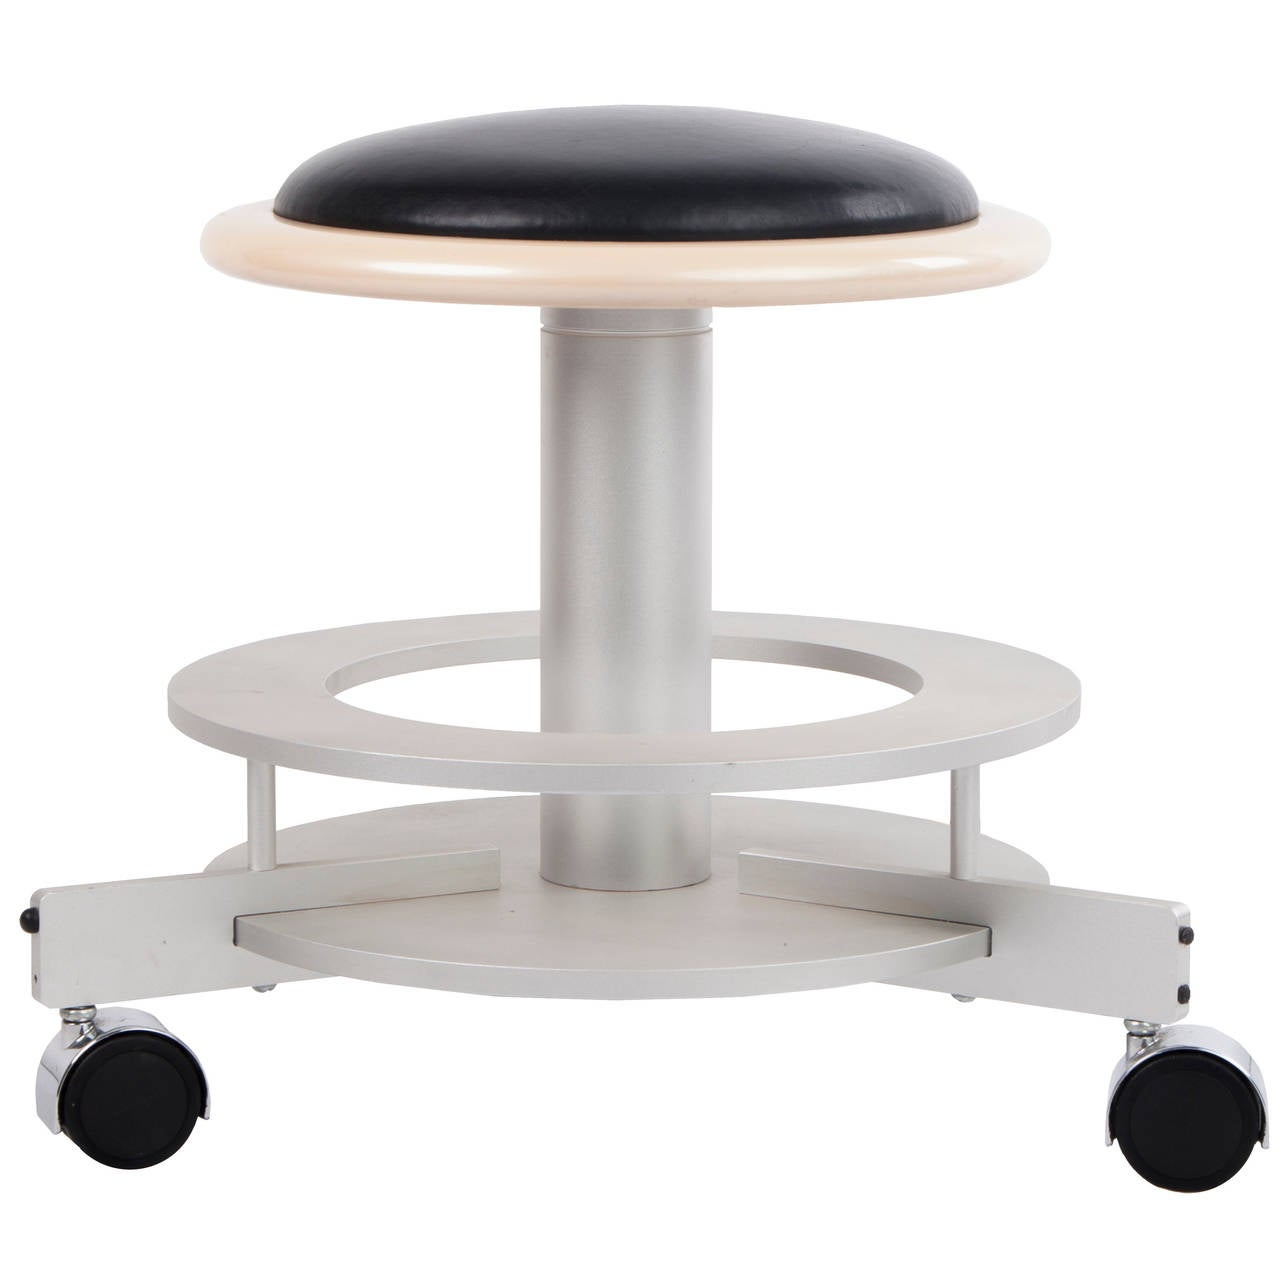 Round Mid-Century Modern Leather Stool on Casters